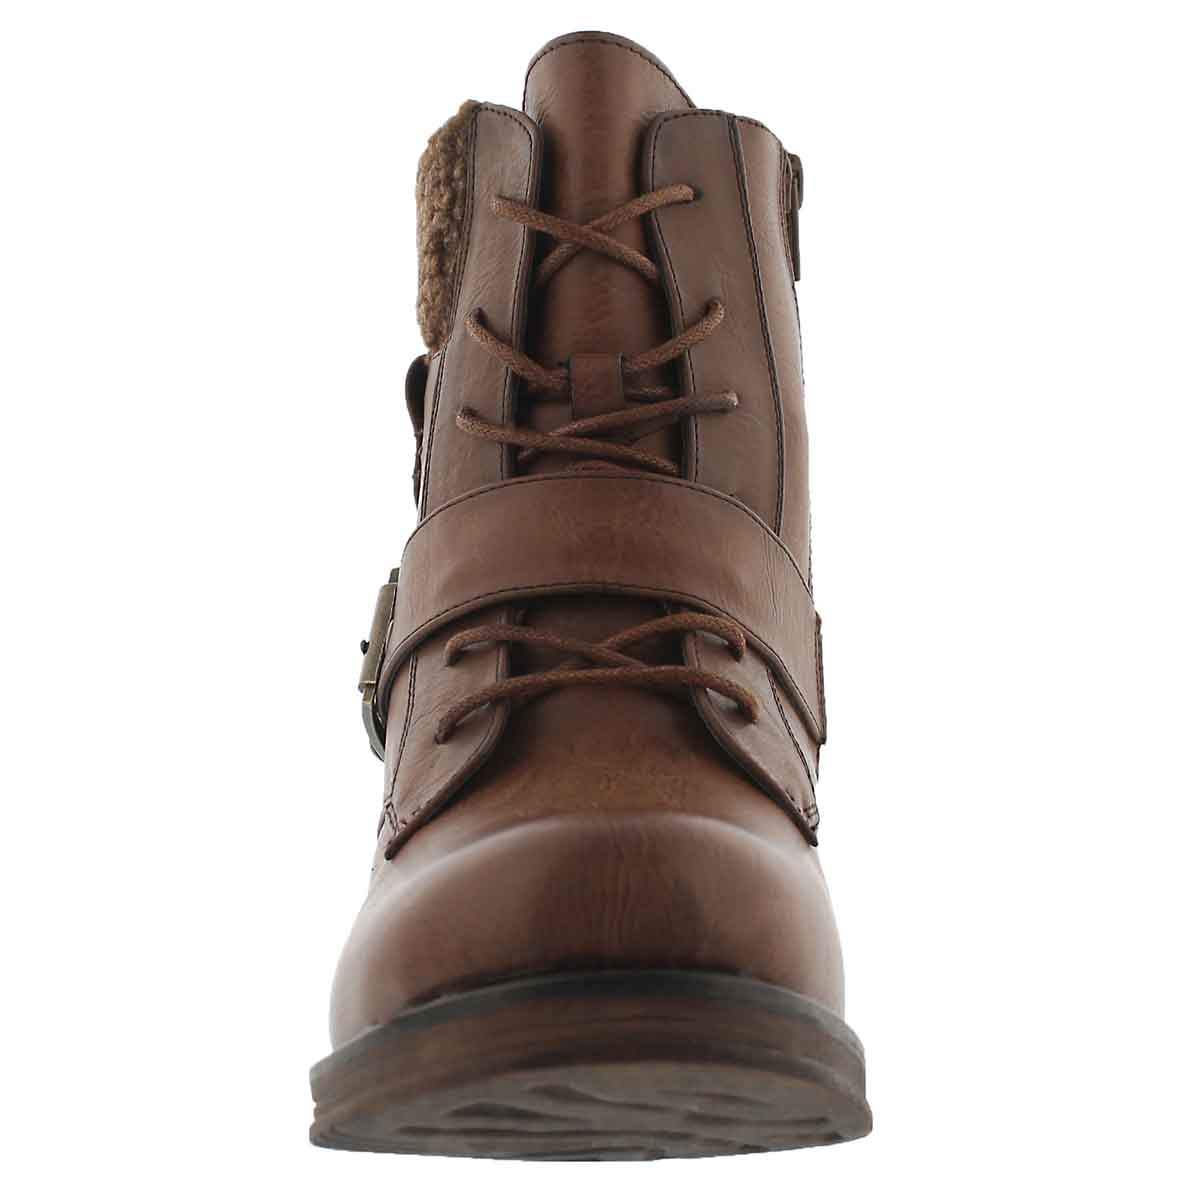 Lds Kiara 2 brn lace up casual boot